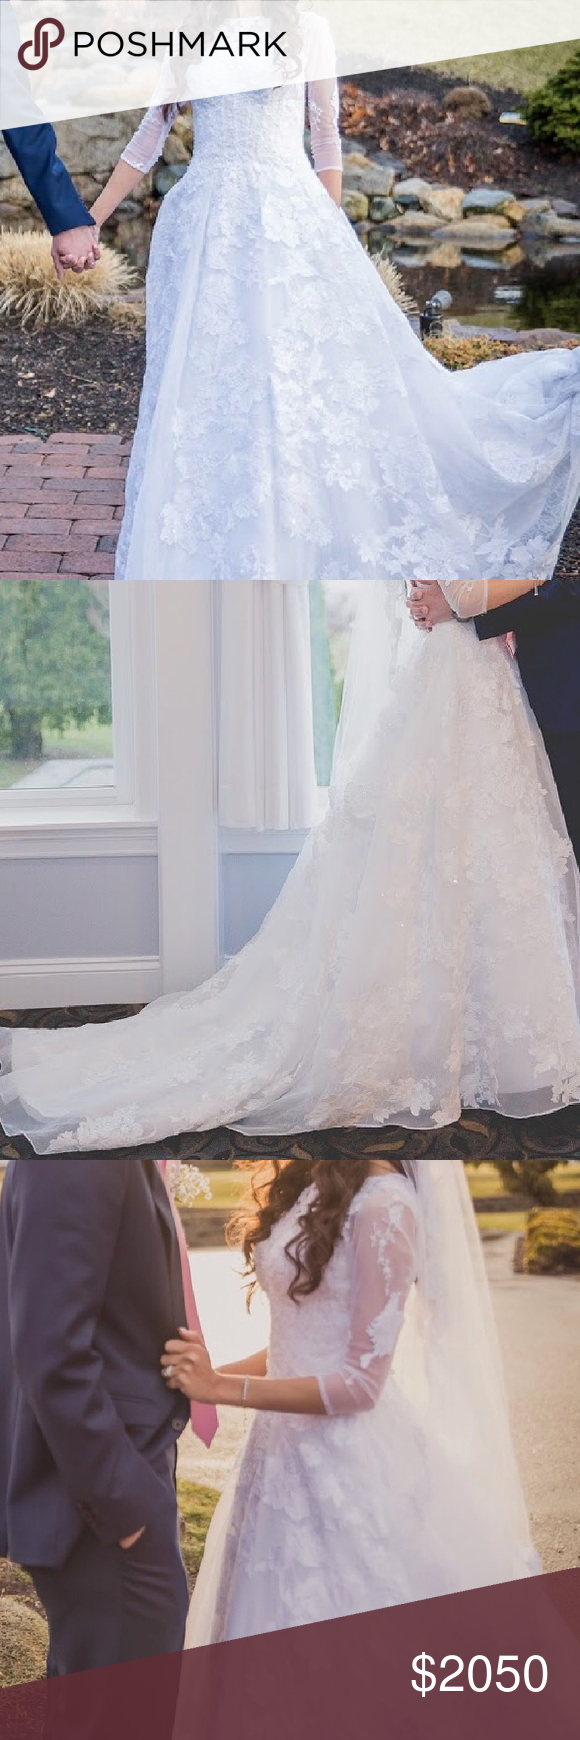 Wedding dress this is a classic timeless white high neck